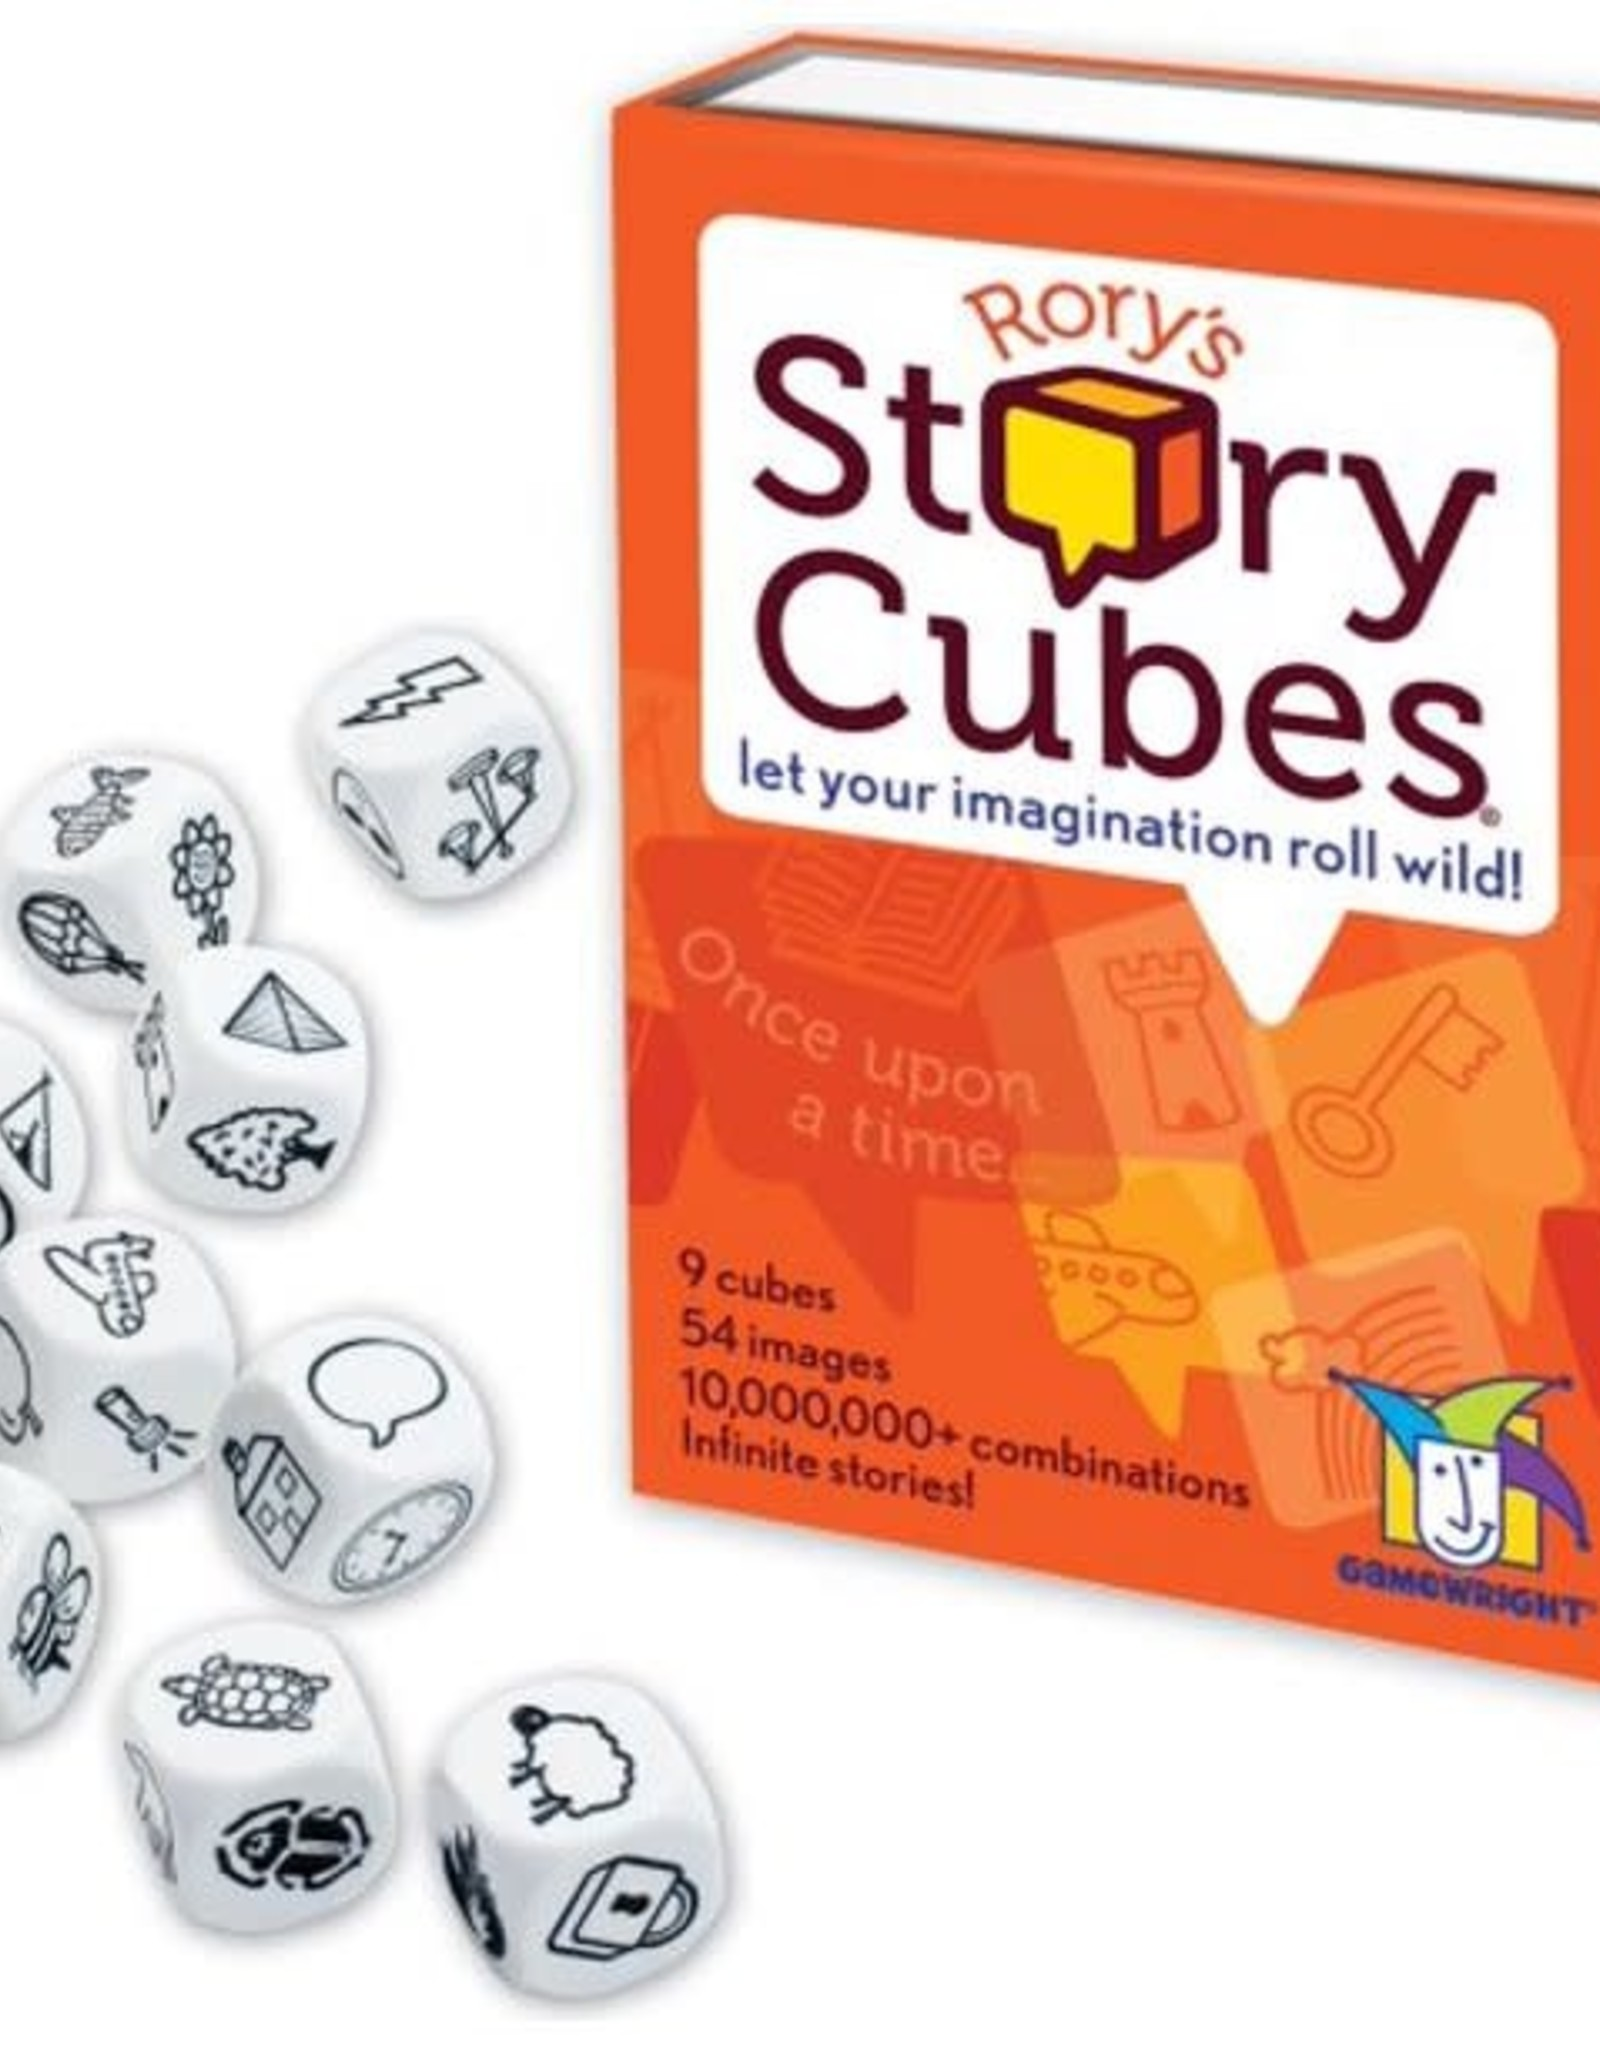 Zygomatic Rory's Story Cubes (Box)